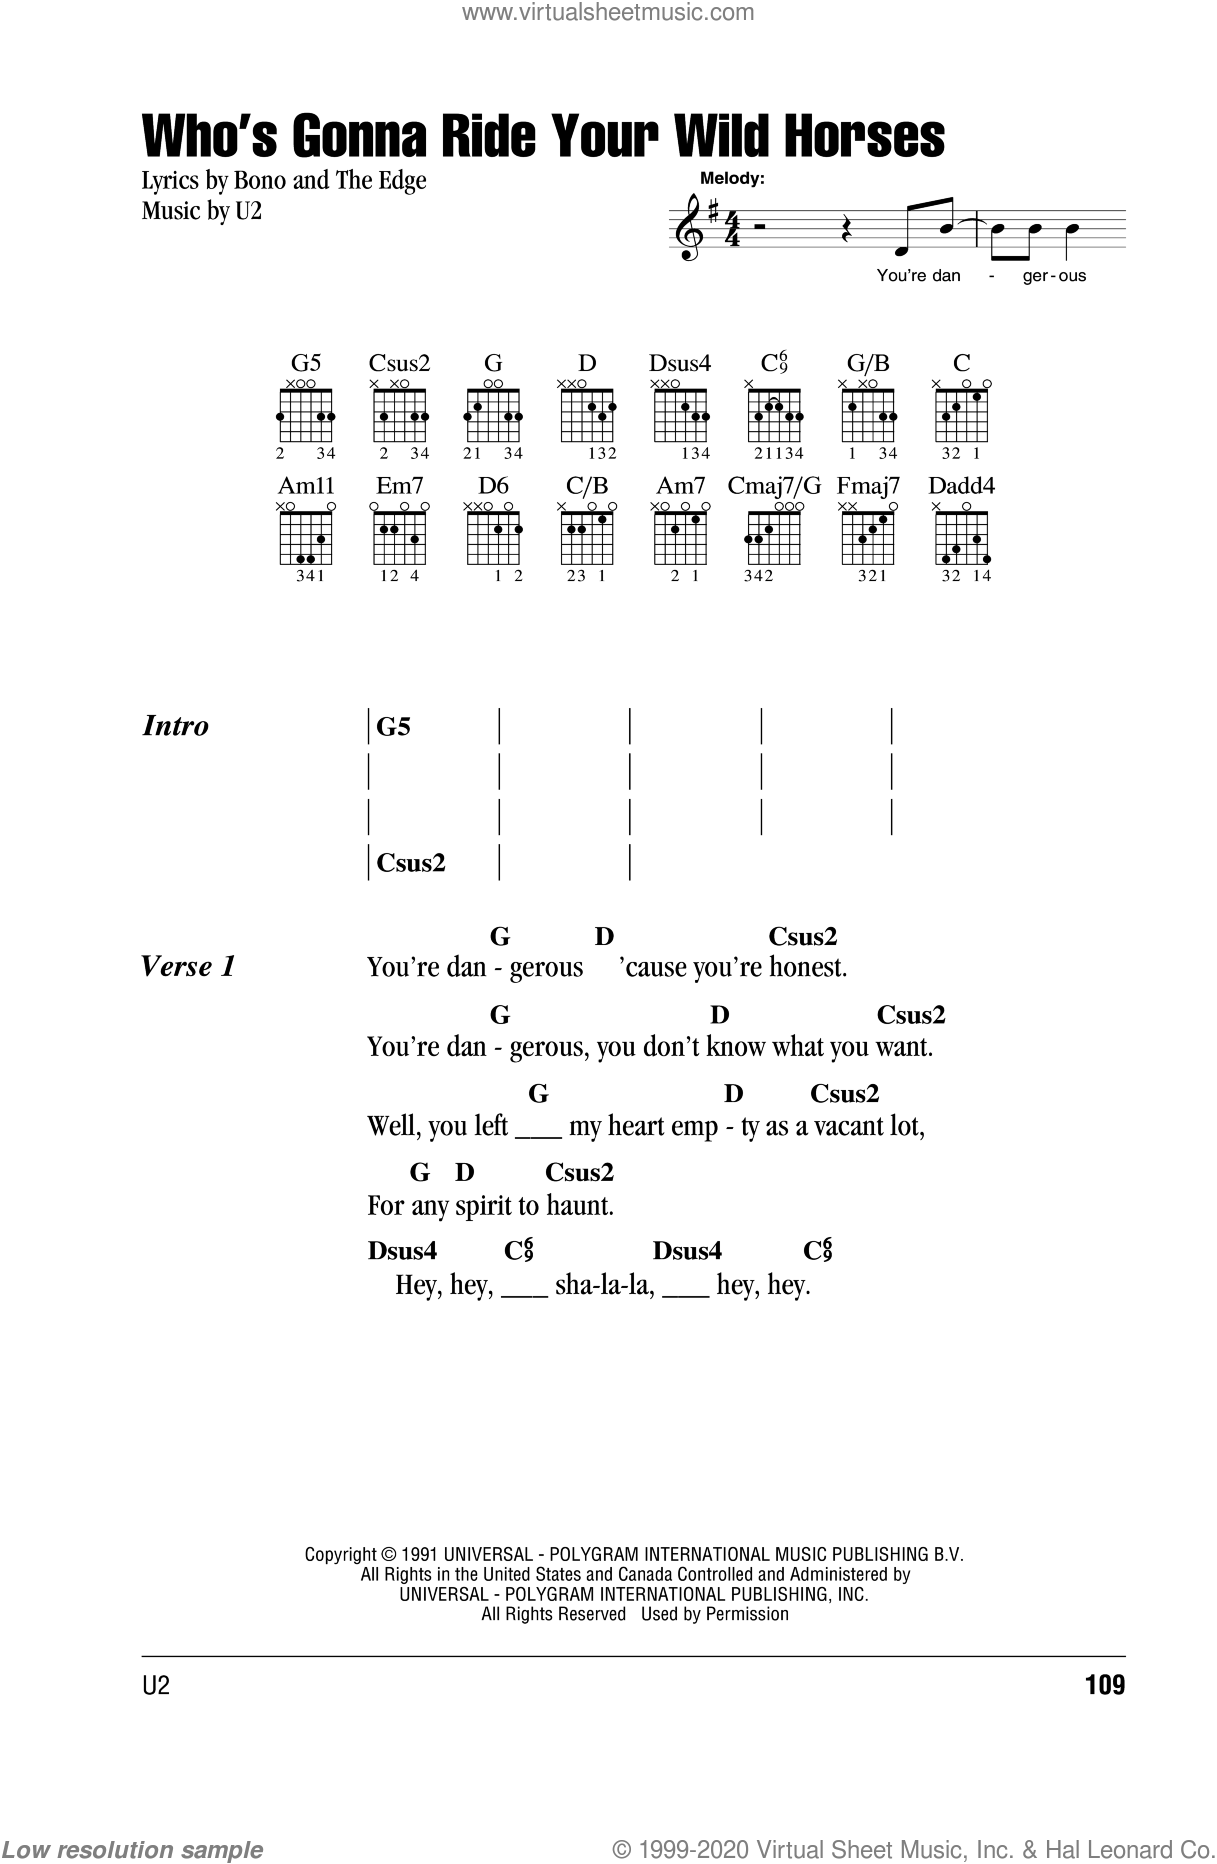 Who's Gonna Ride Your Wild Horses sheet music for guitar (chords) by The Edge, Bono and U2. Score Image Preview.